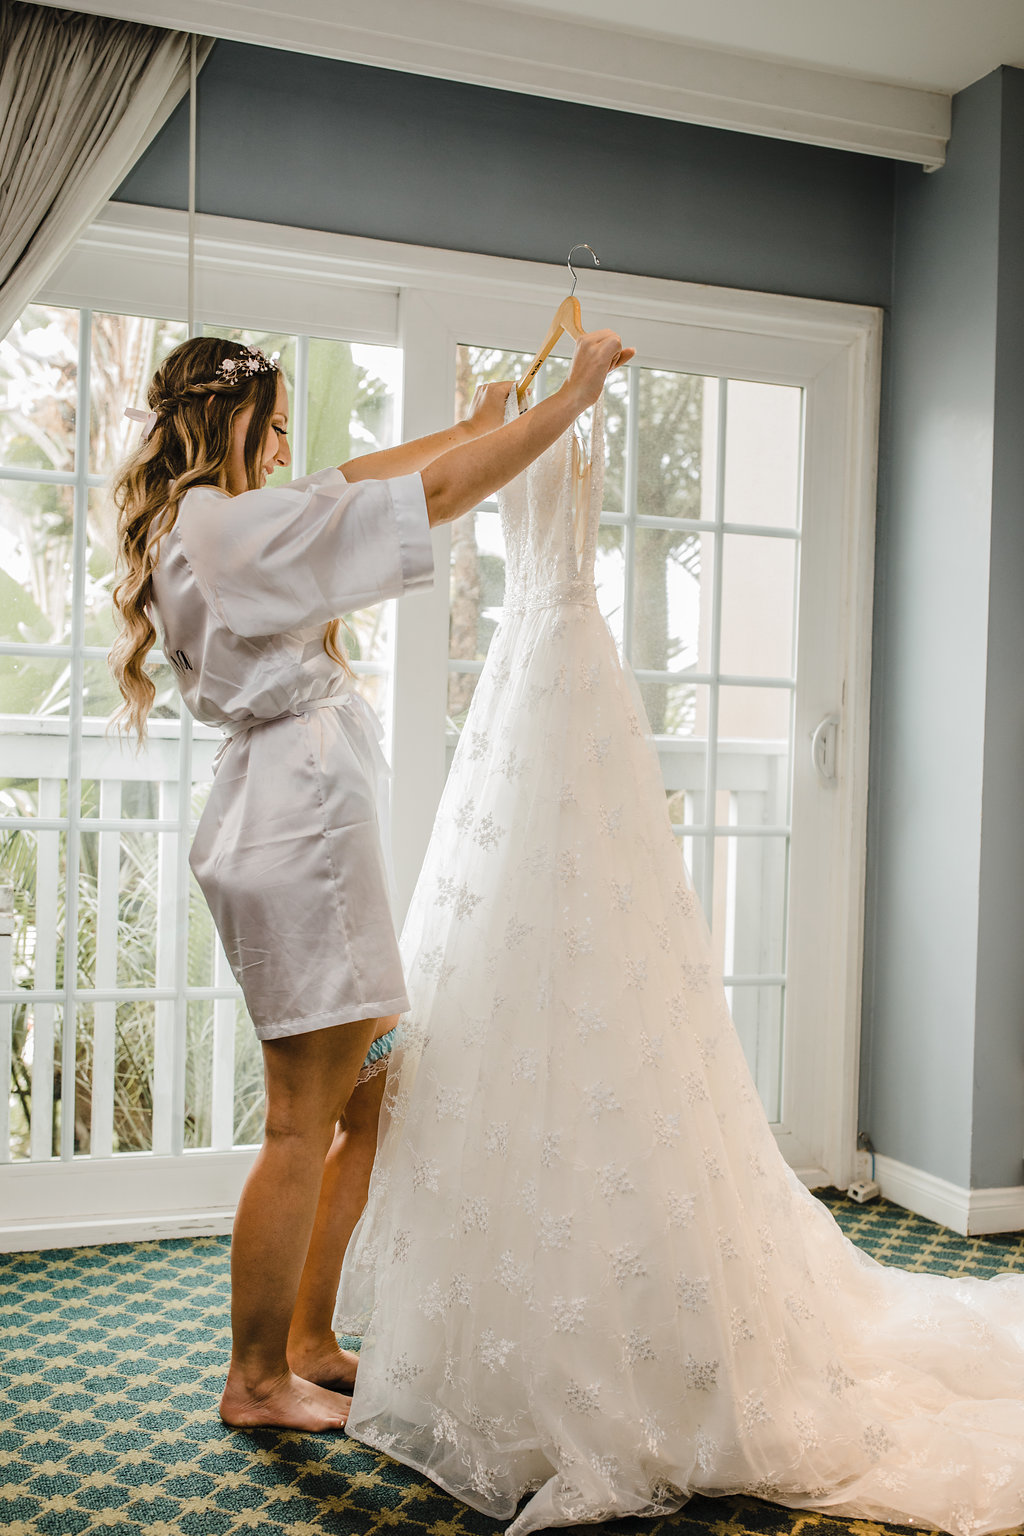 california bride with wedding dress wedding hair getting ready pictures professional